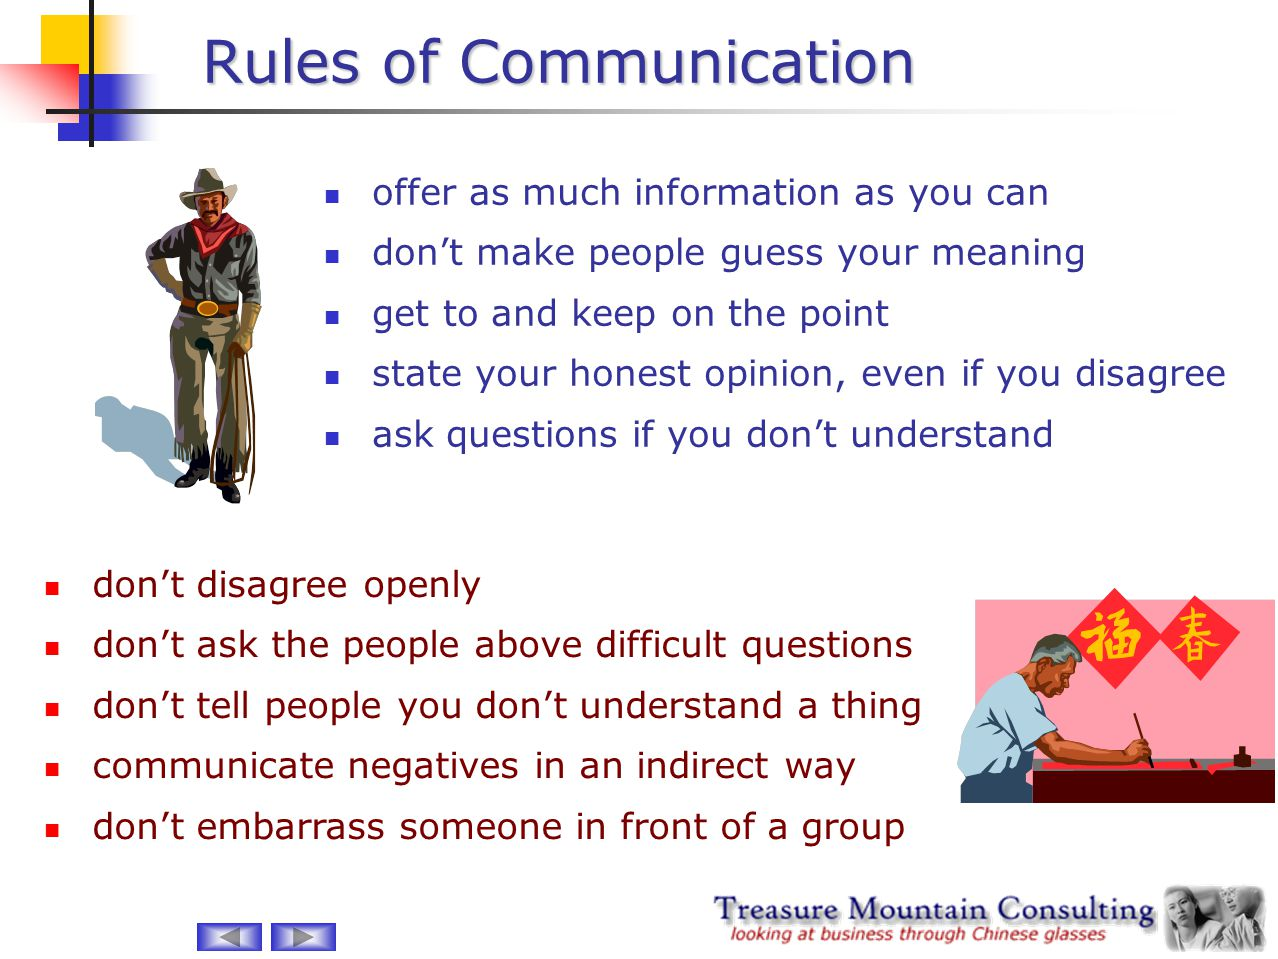 communication rules Basic principles of effective communication many definitions describe communication as a transfer of information, thoughts or ideas to create shared understanding between a sender and a receiver the information may be written or spoken, professional or social, personal or impersonal to name a few possibilities.